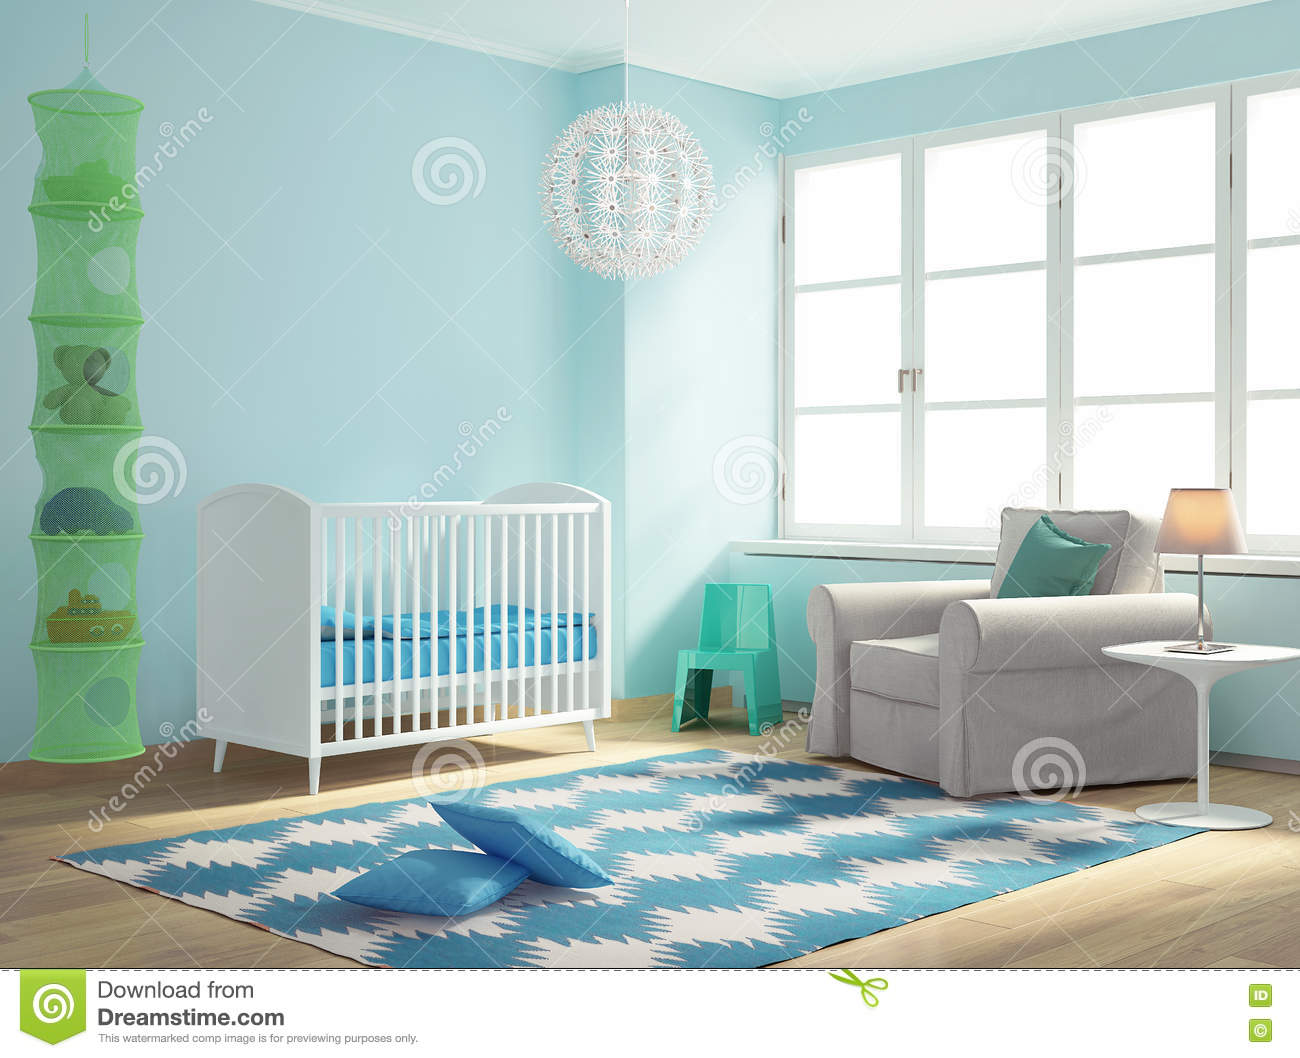 Blue Nursery Baby Room With Rug Stock Image Image Of Flowers